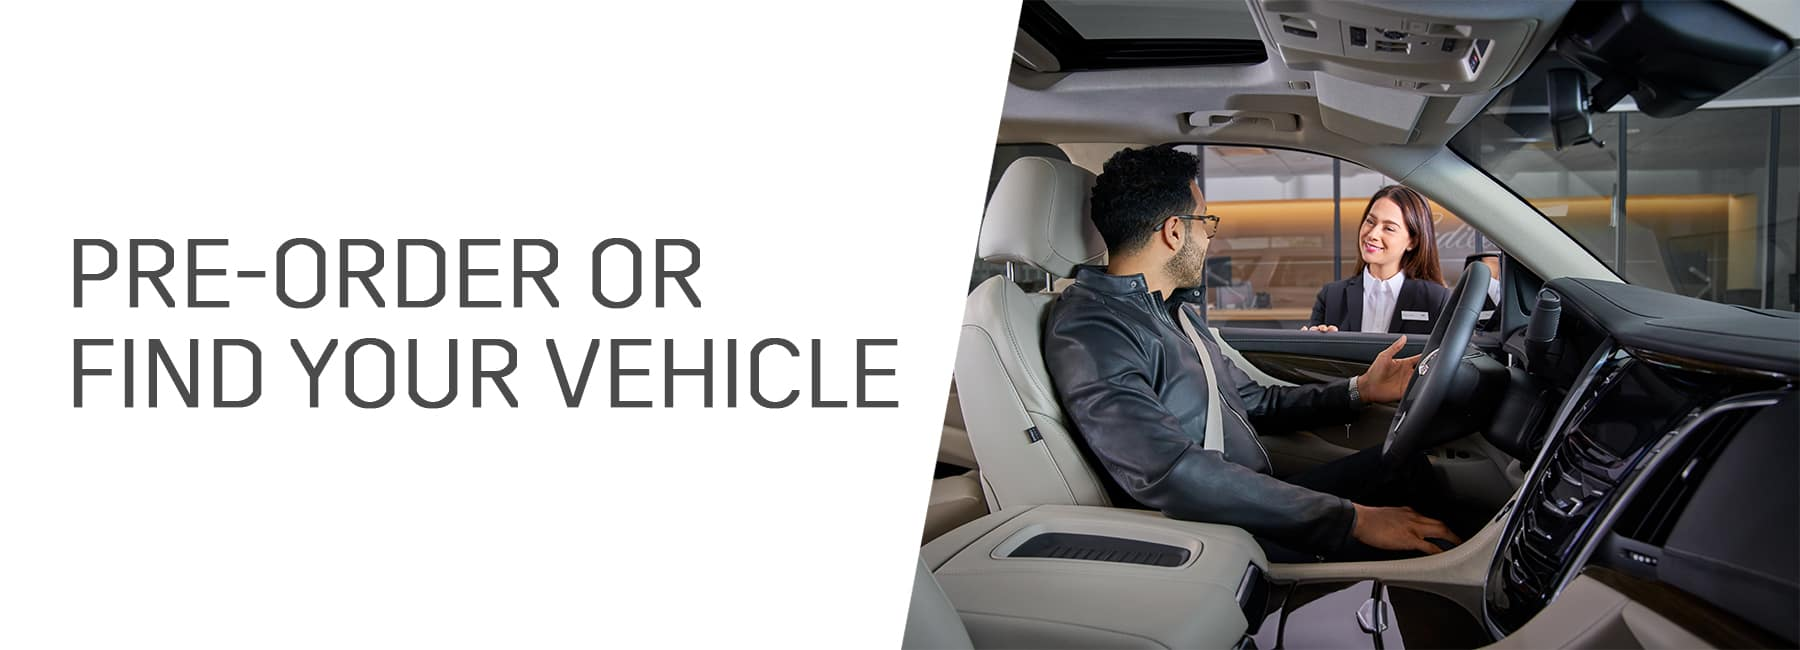 Pre-Order or Find Your Vehicle at Patrick Cadillac in Schaumburg IL